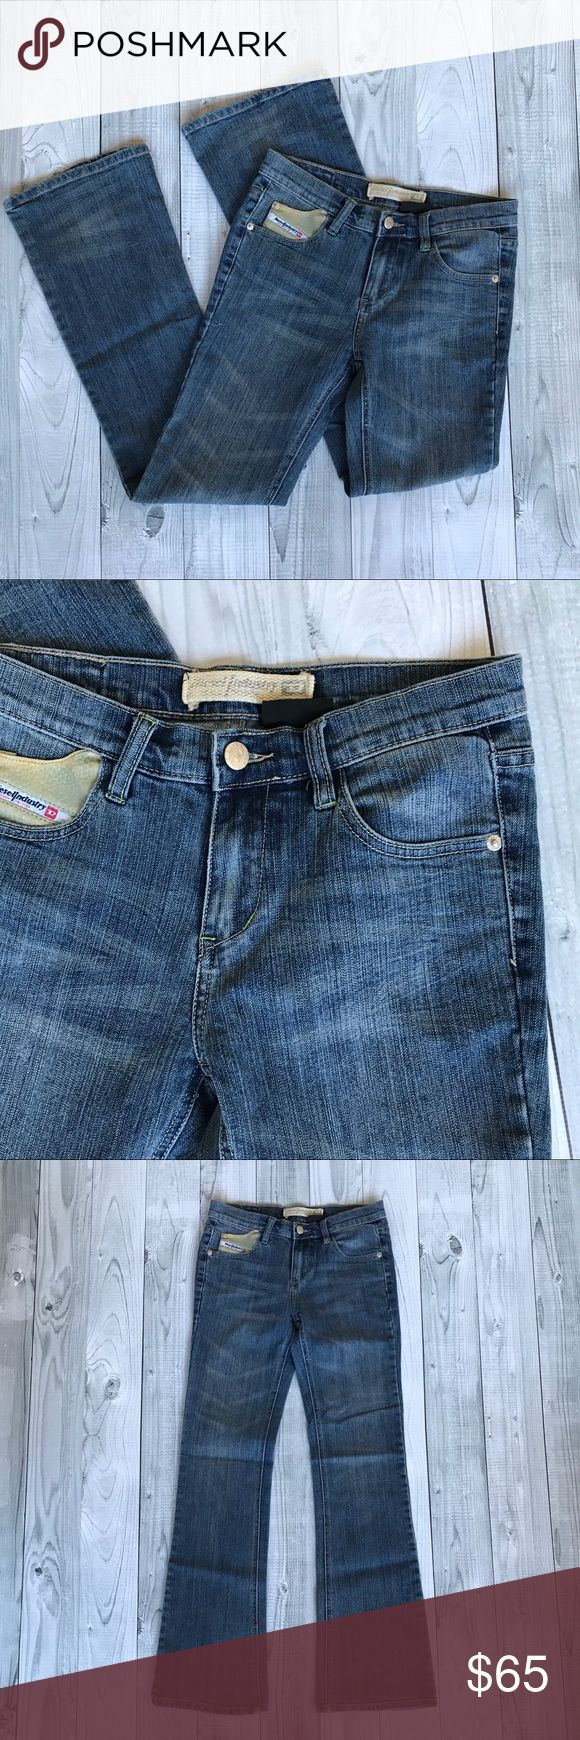 Diesel boot cut denim blue jeans women's size 27 Gently used in good condition Diesel boot cut denim blue jeans women's size 27. Size tag faded. Diesel Jeans Boot Cut